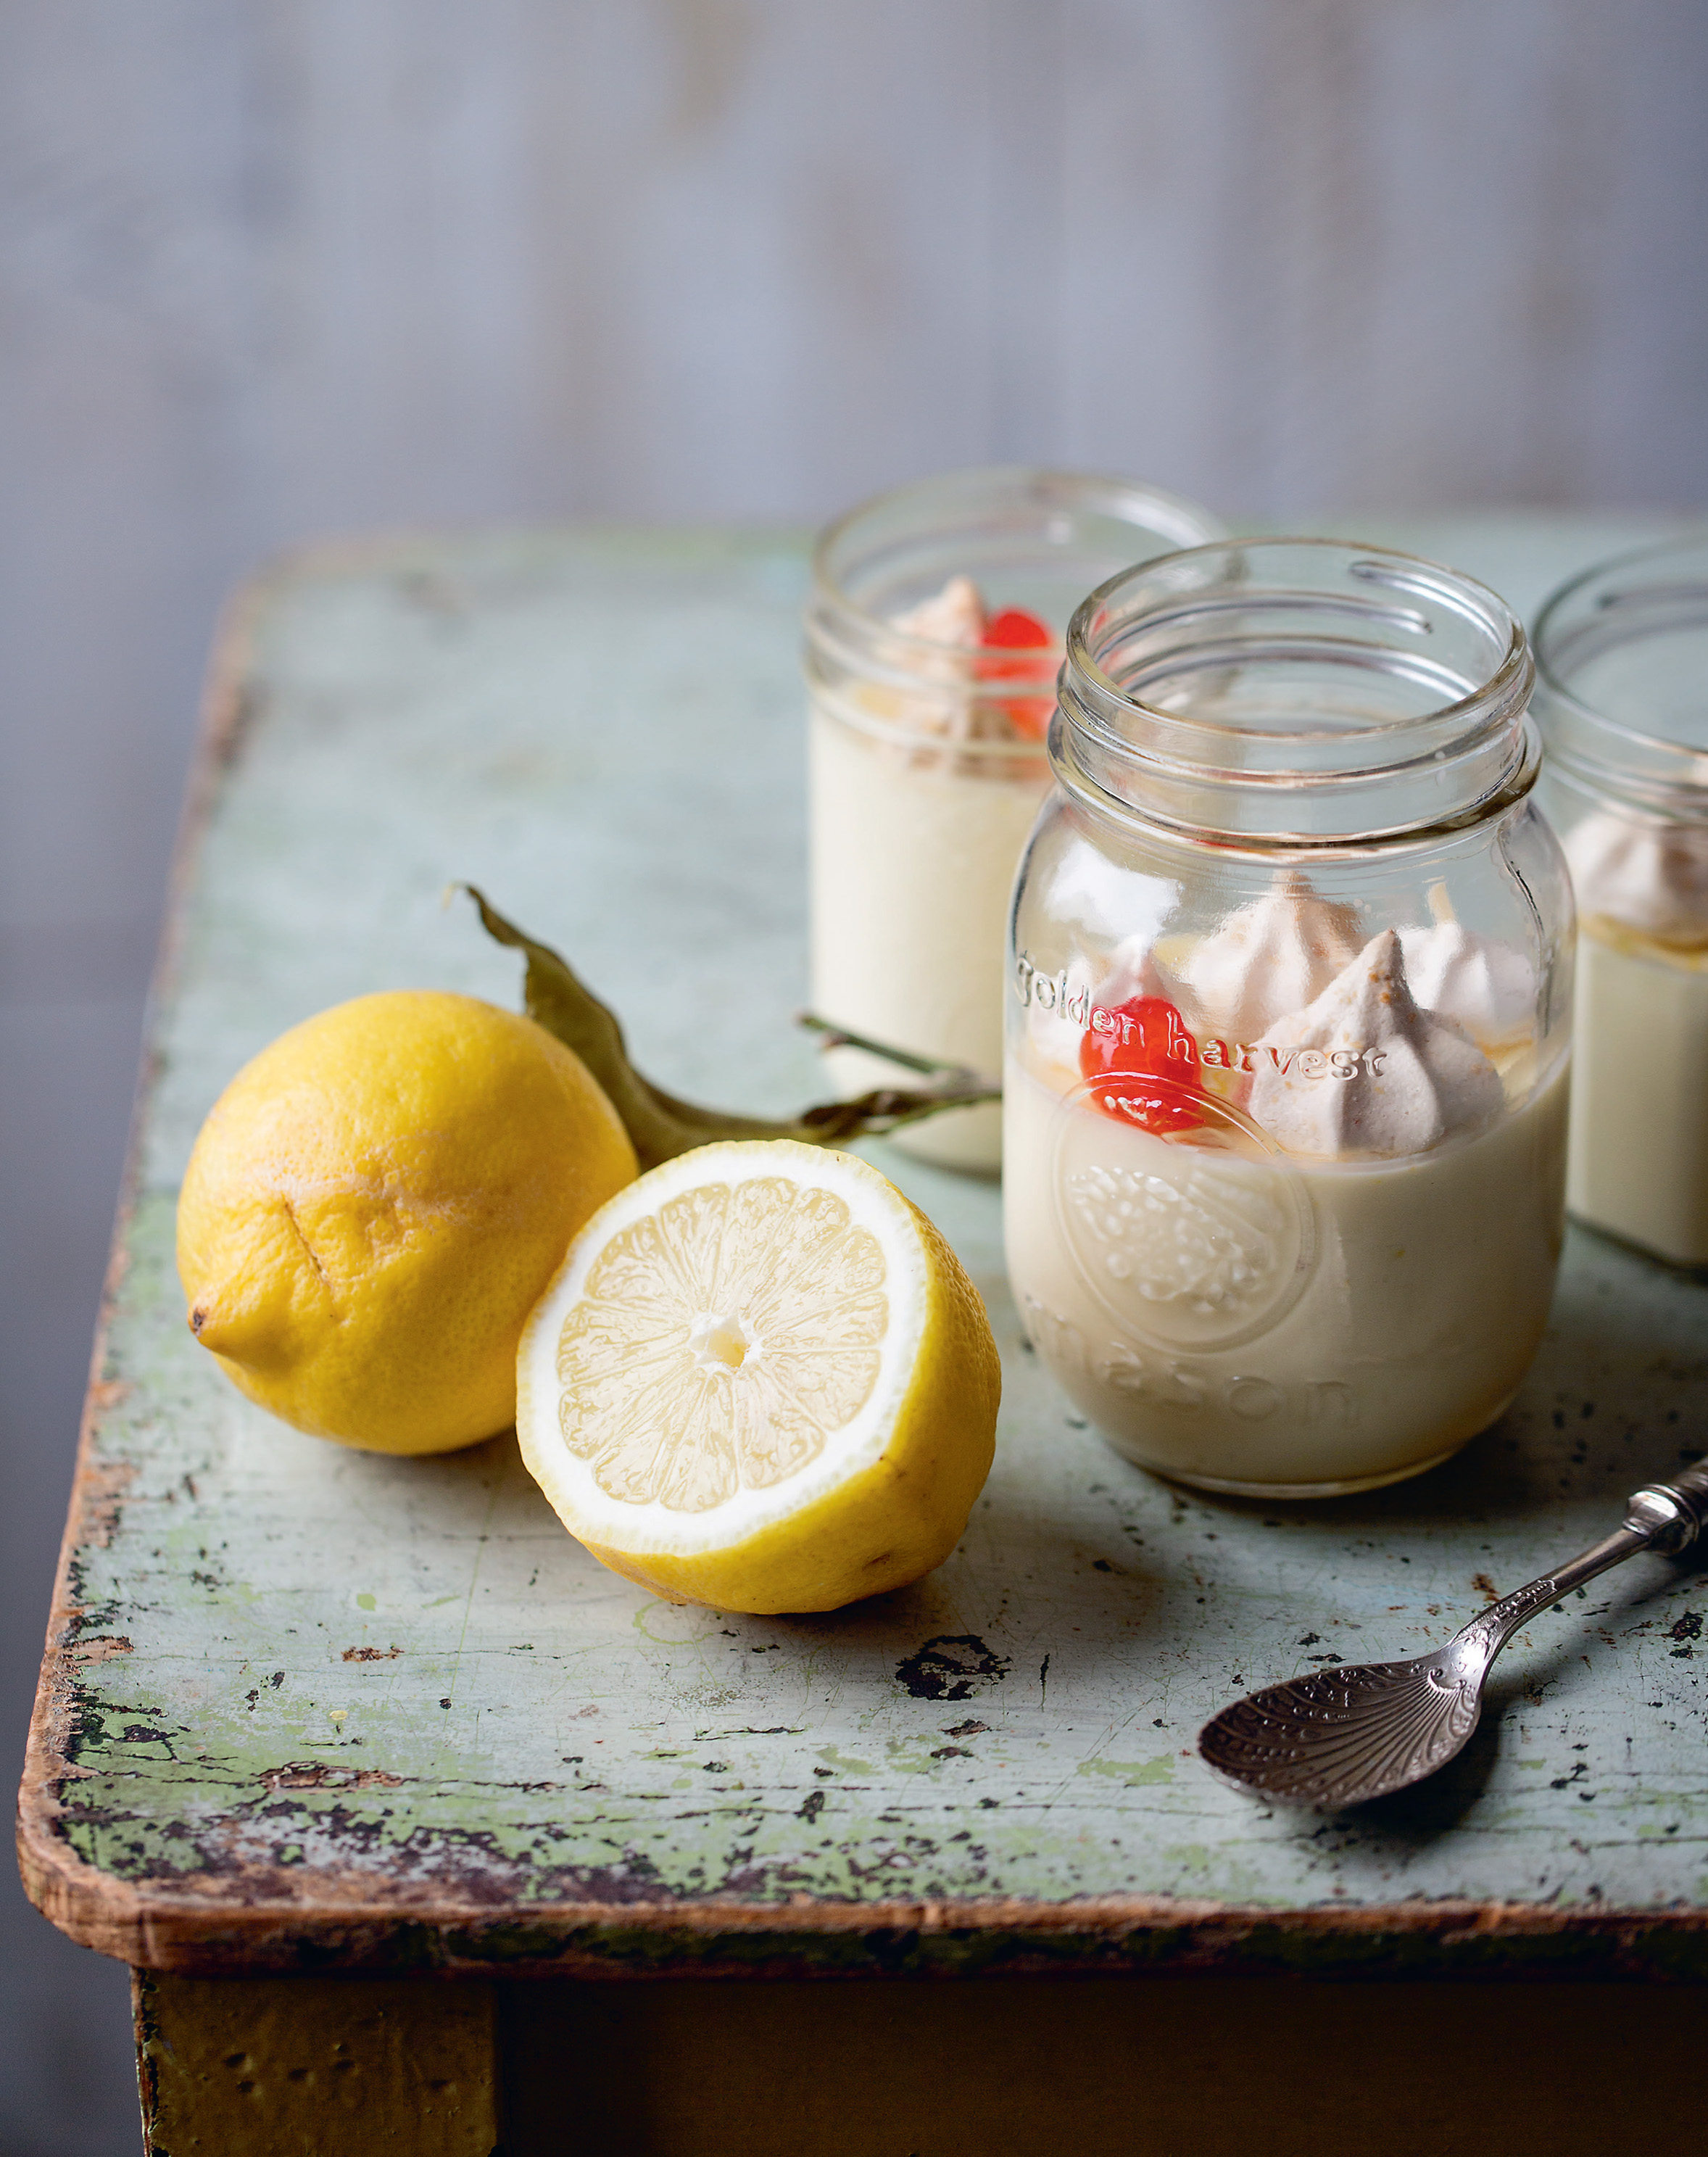 Lemon meringue posset